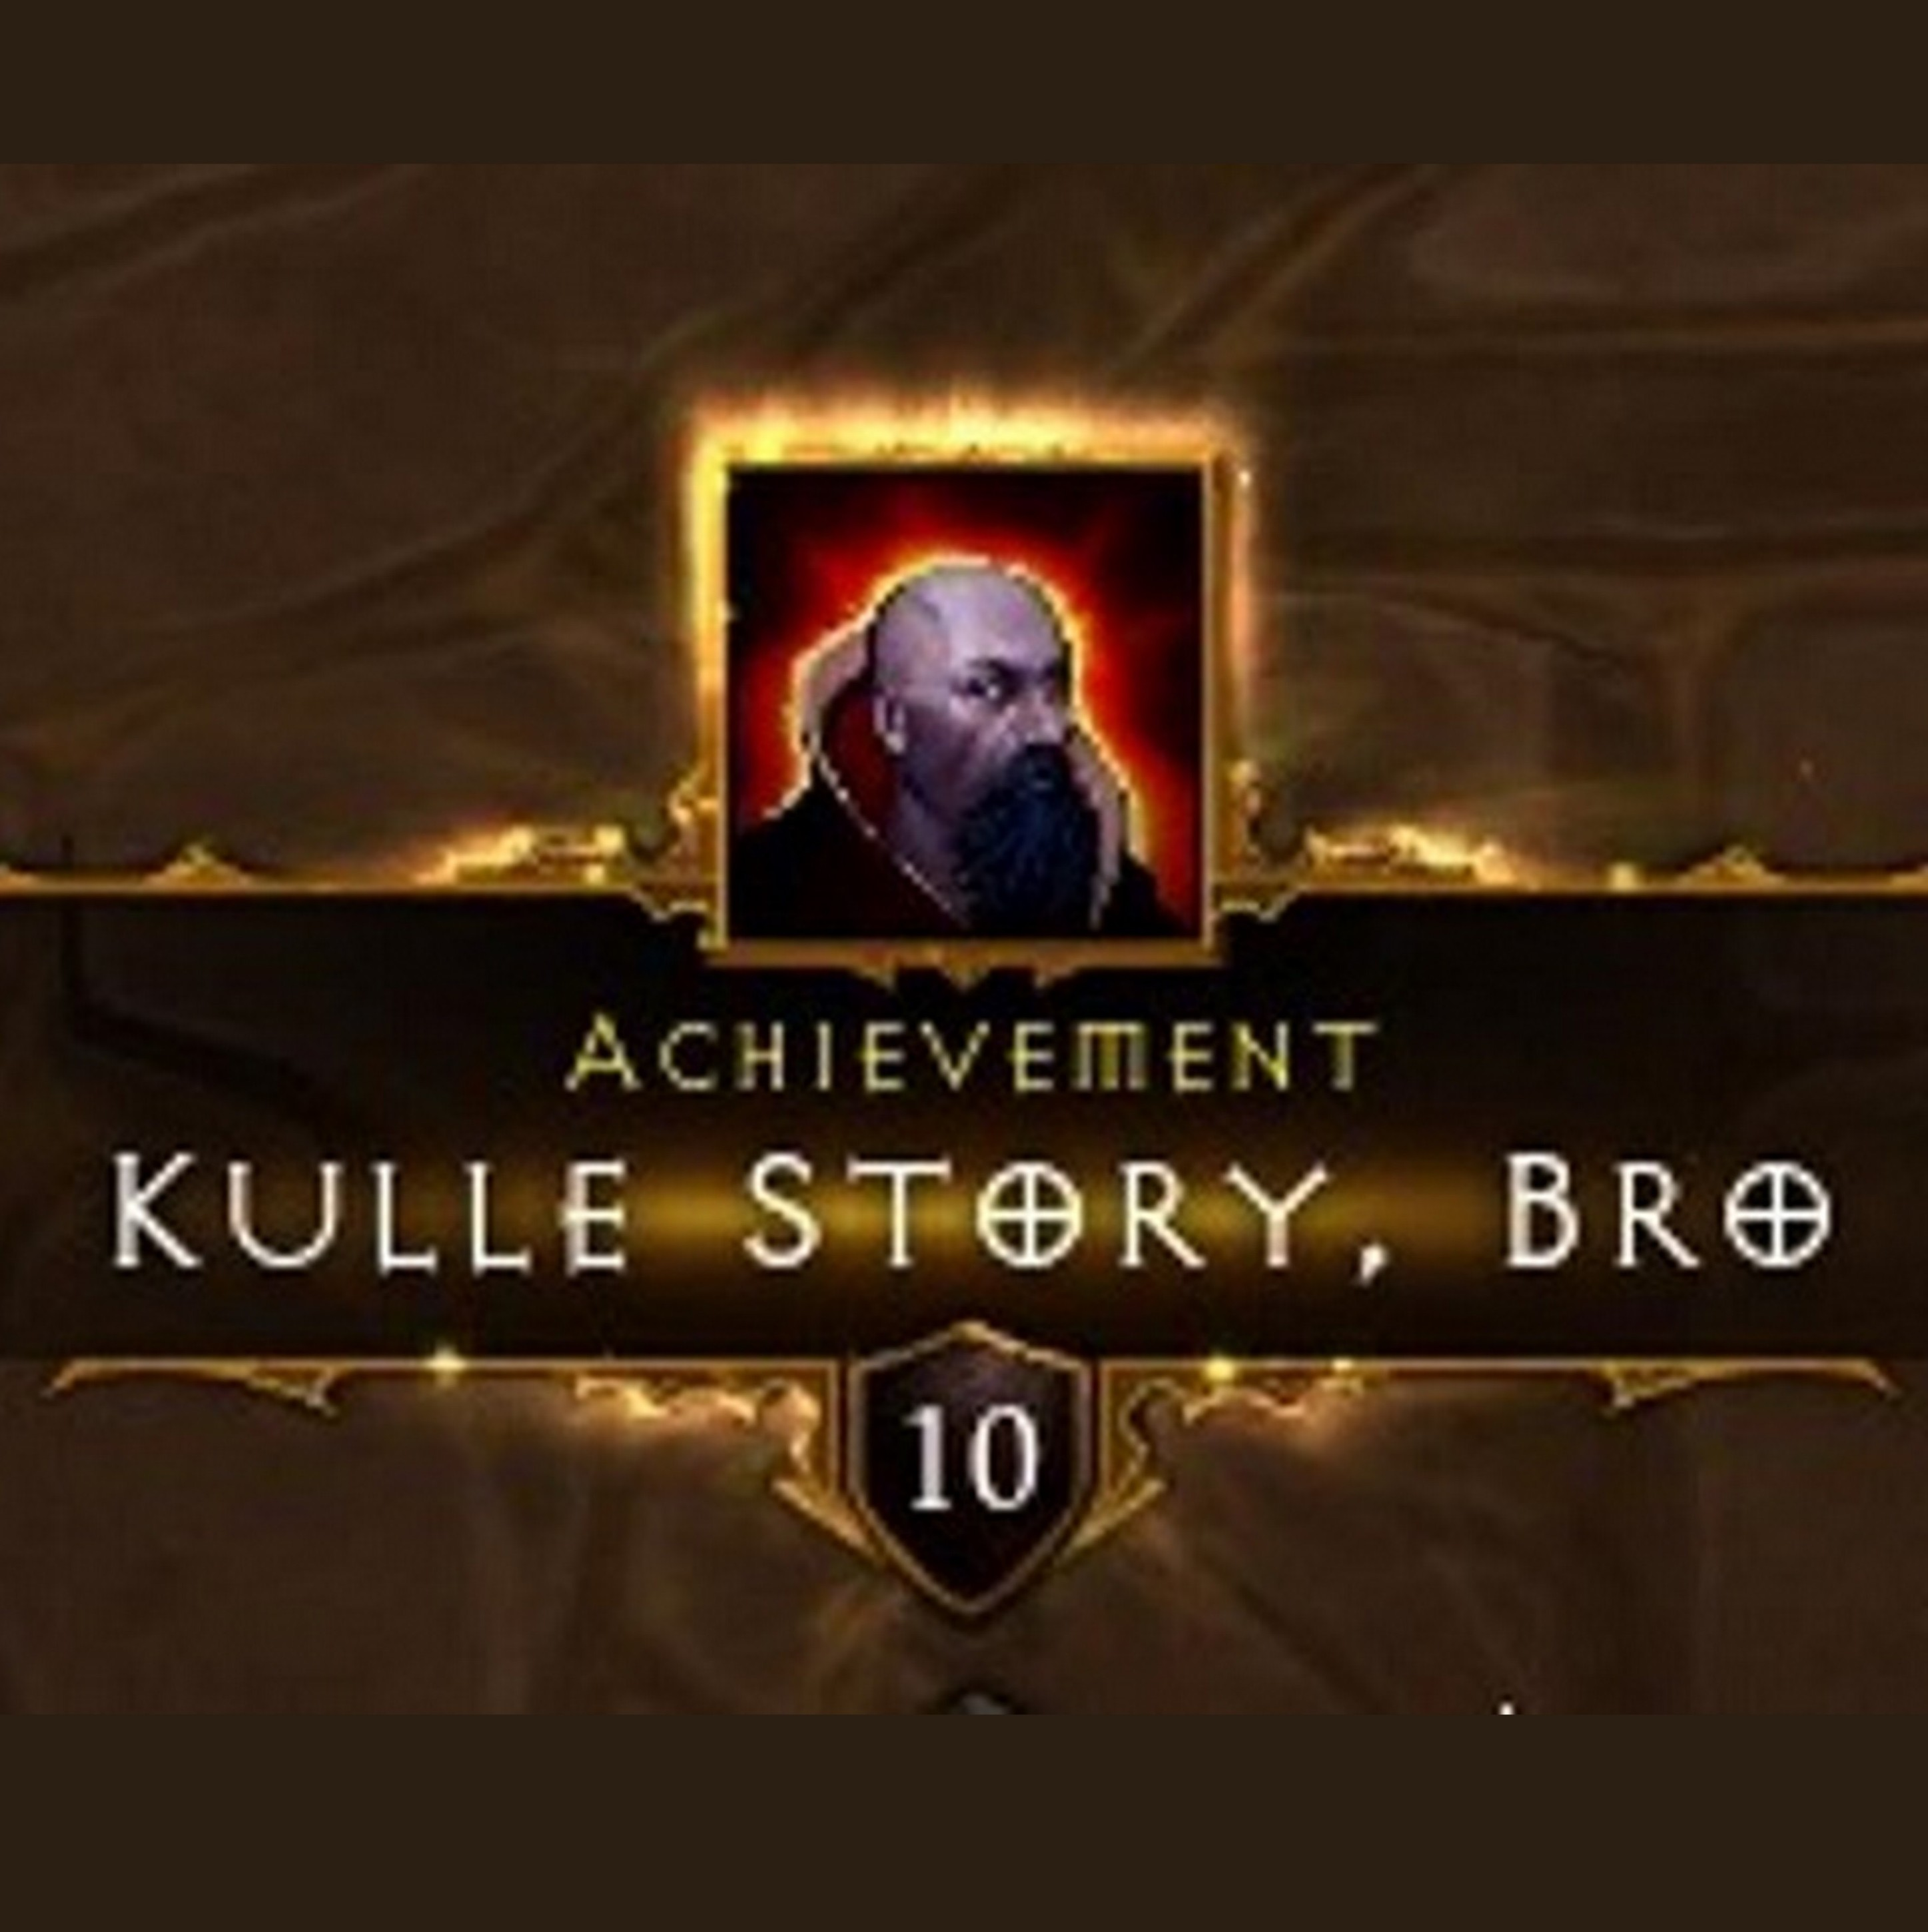 Kulle Story Bro - A Diablo 3 Podcast Episode 37